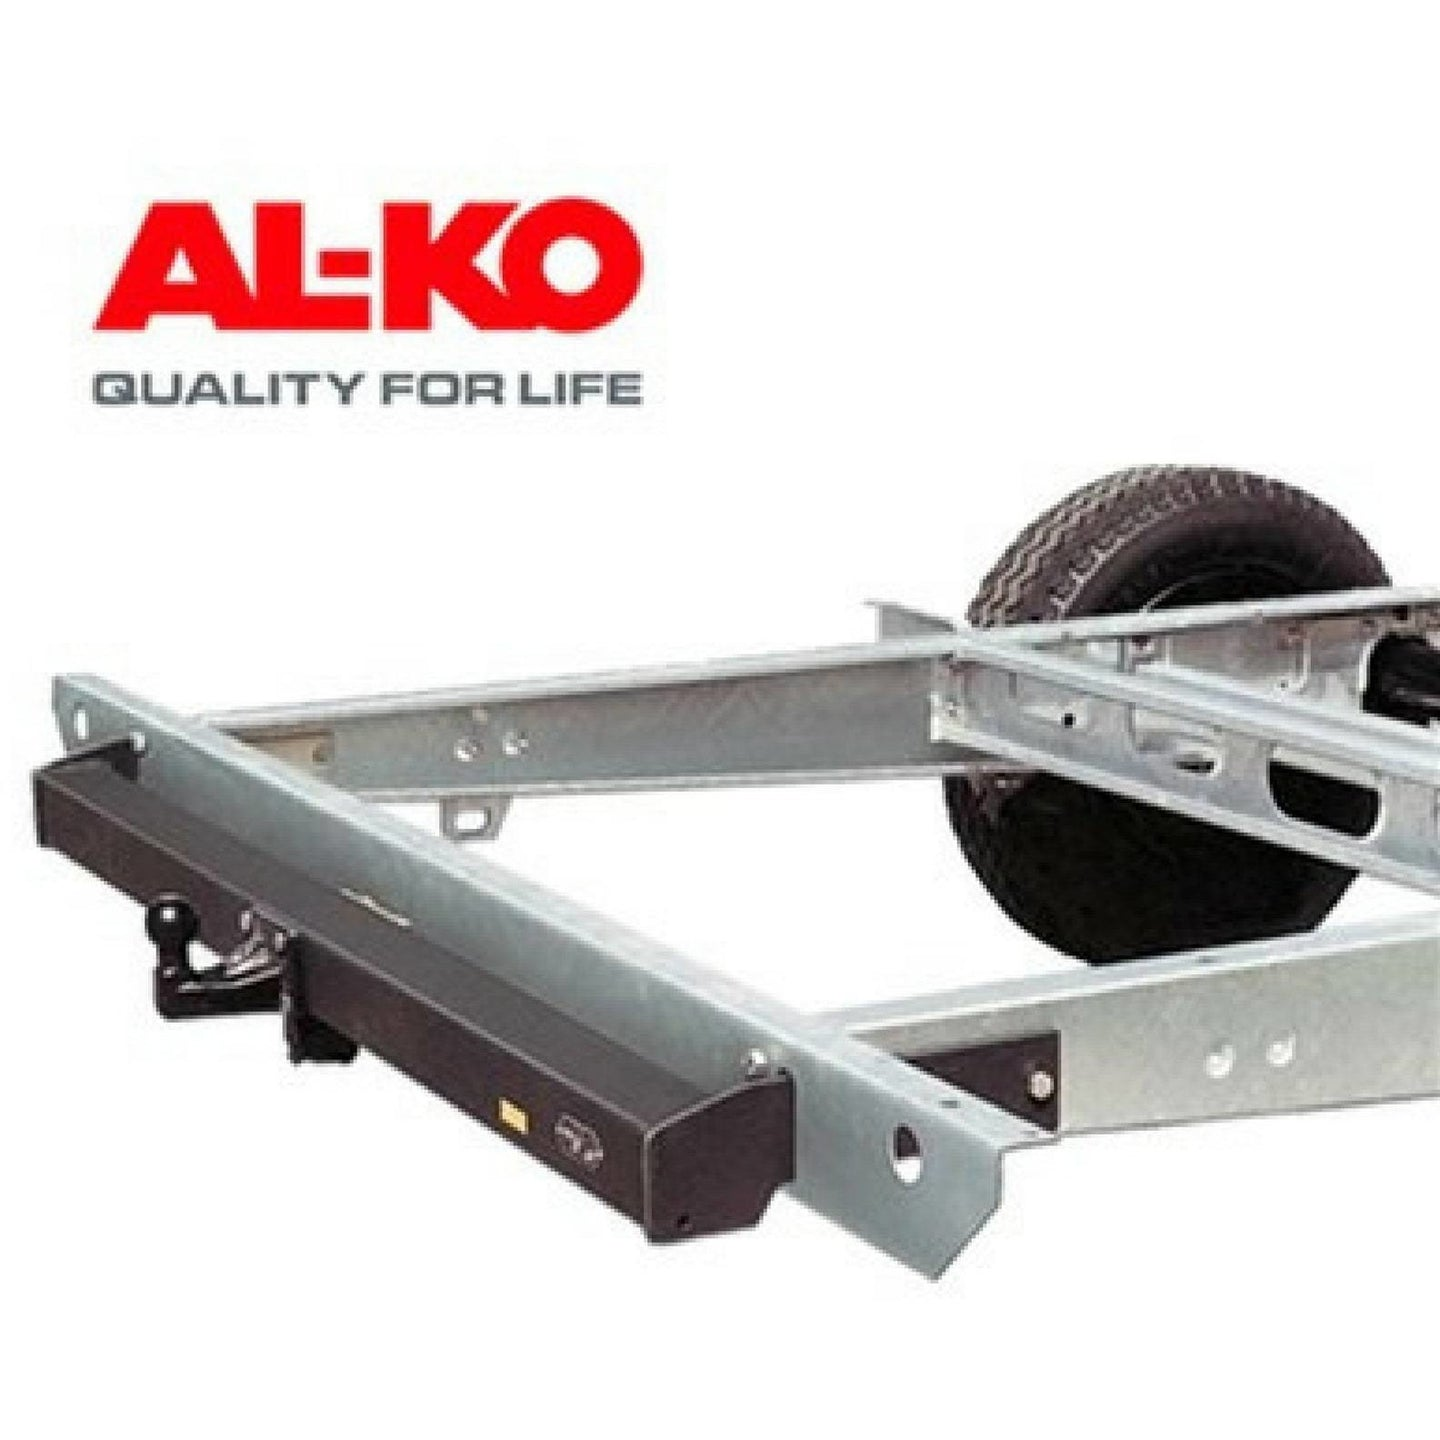 ALKO Towbar Assembly (1620355) - Quality Caravan Awnings